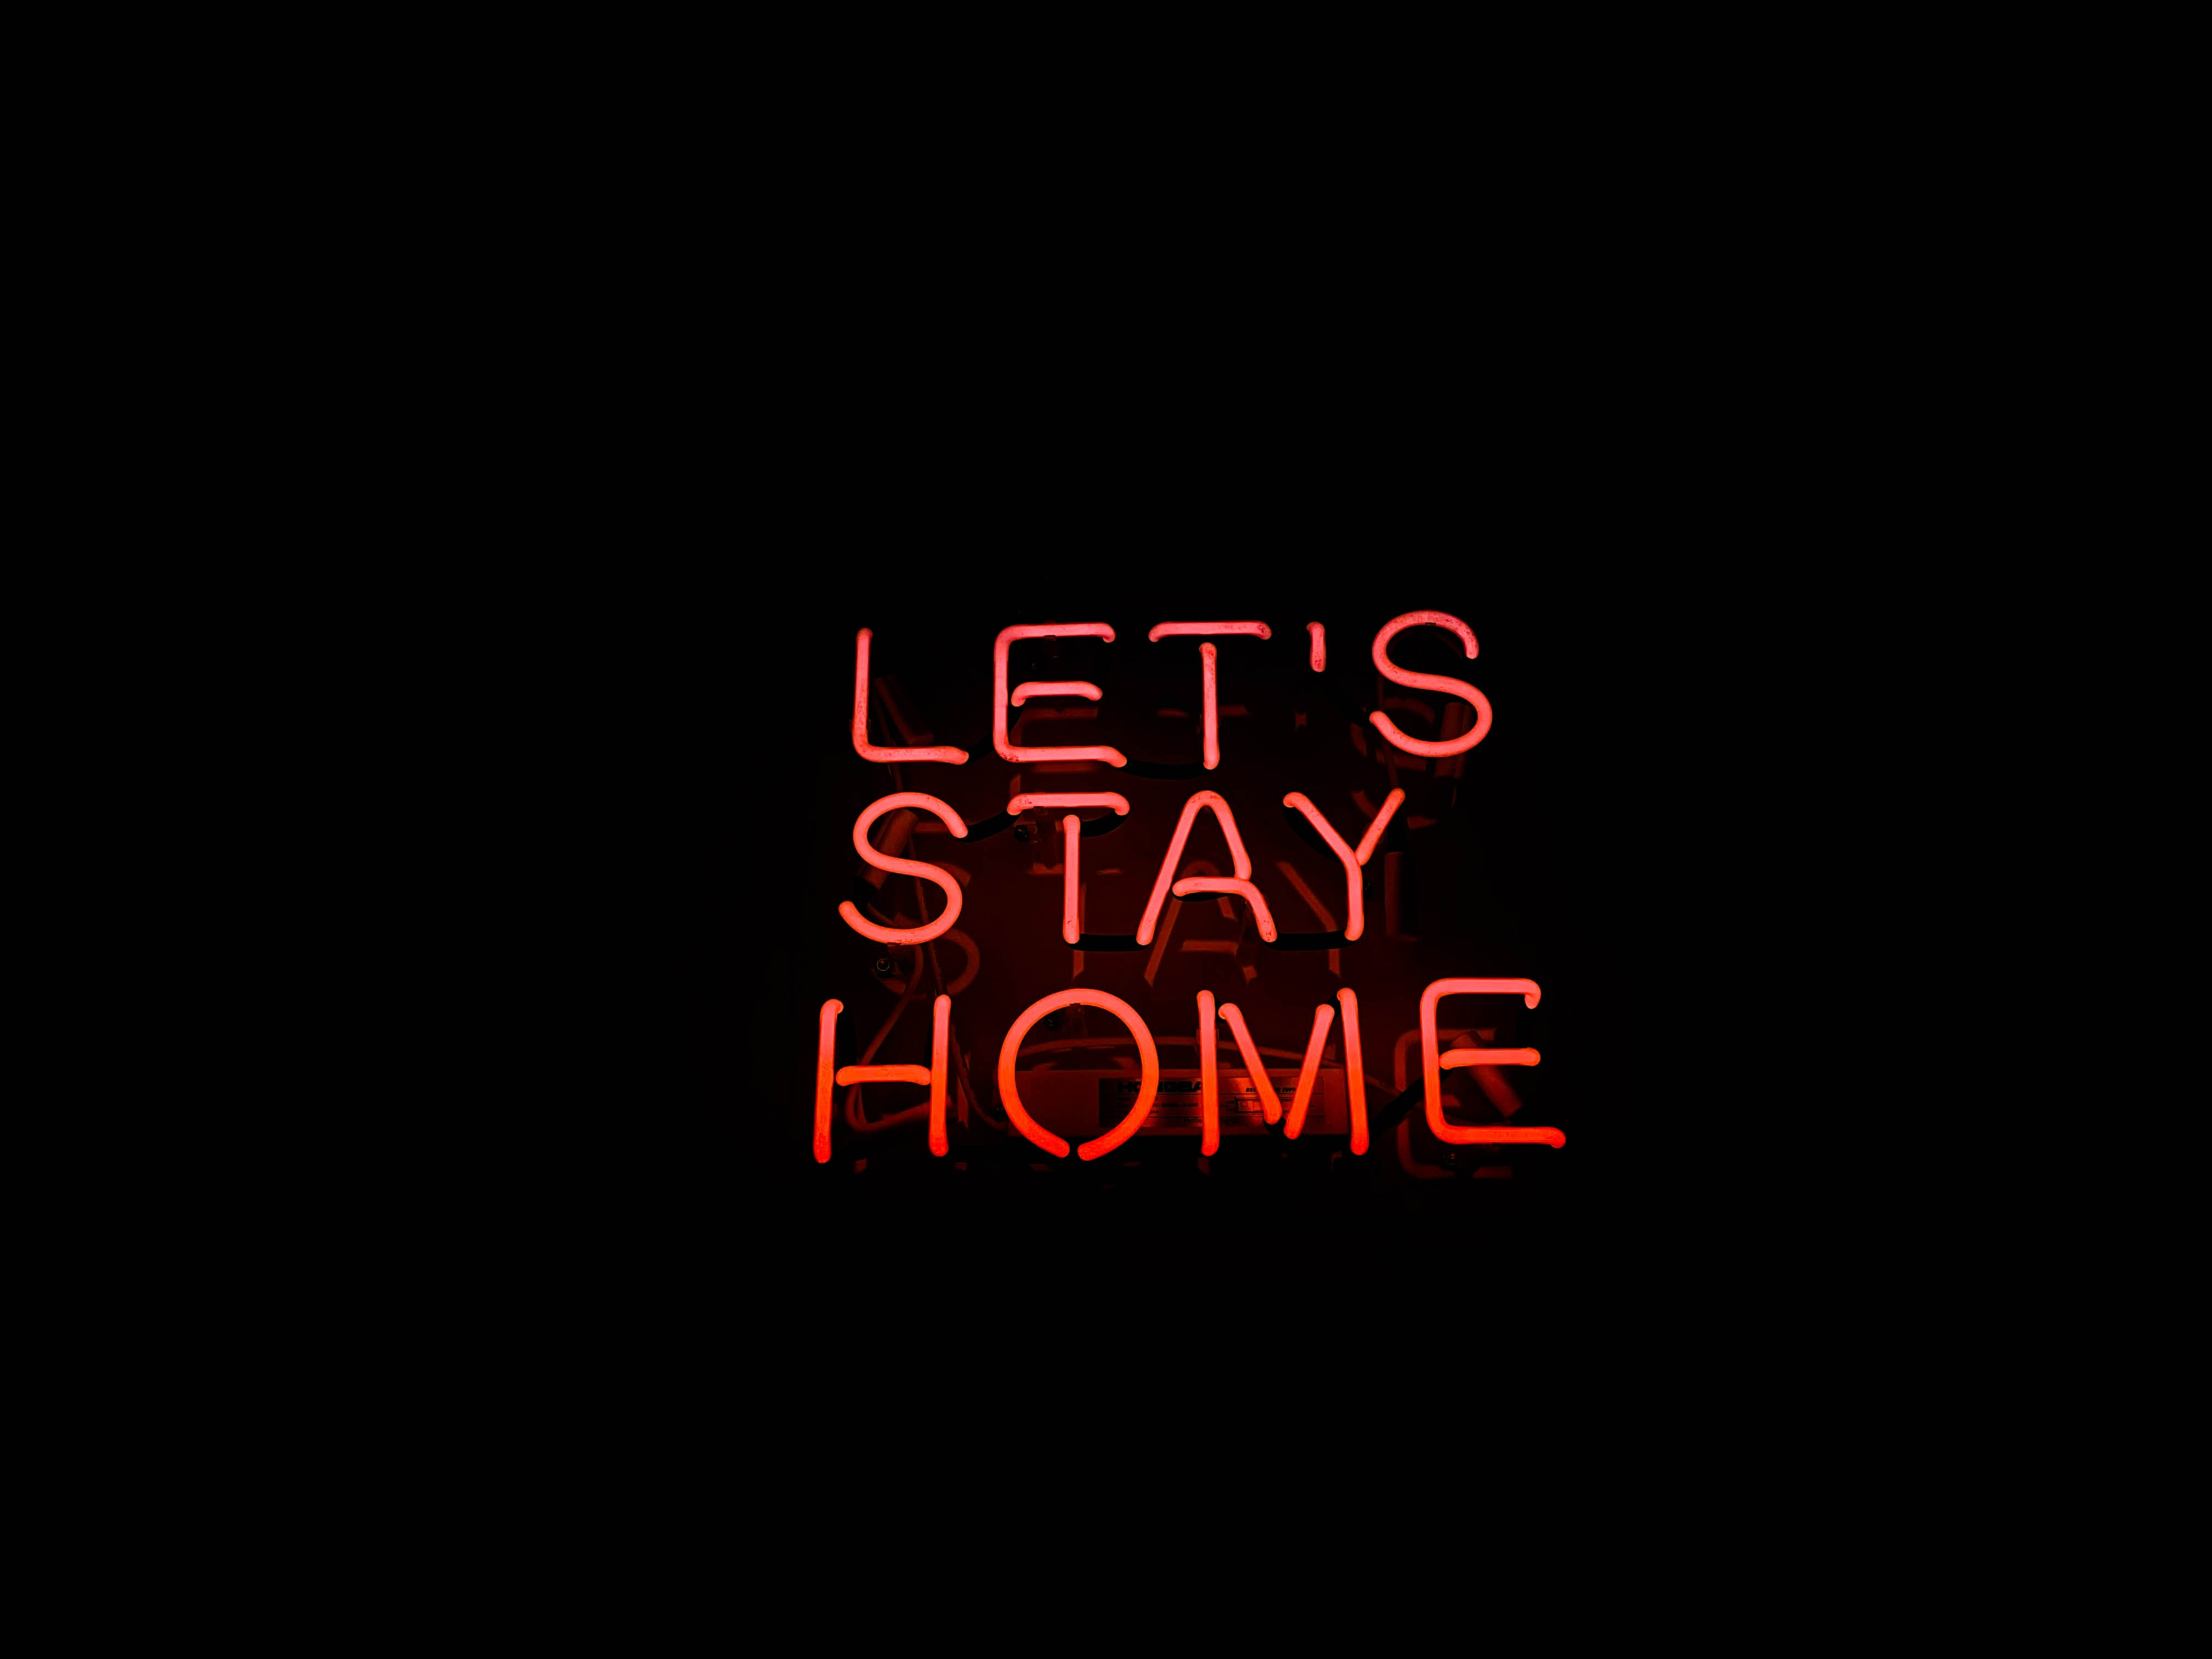 116905 download wallpaper Words, House, Neon, Backlight, Illumination, Inscription screensavers and pictures for free